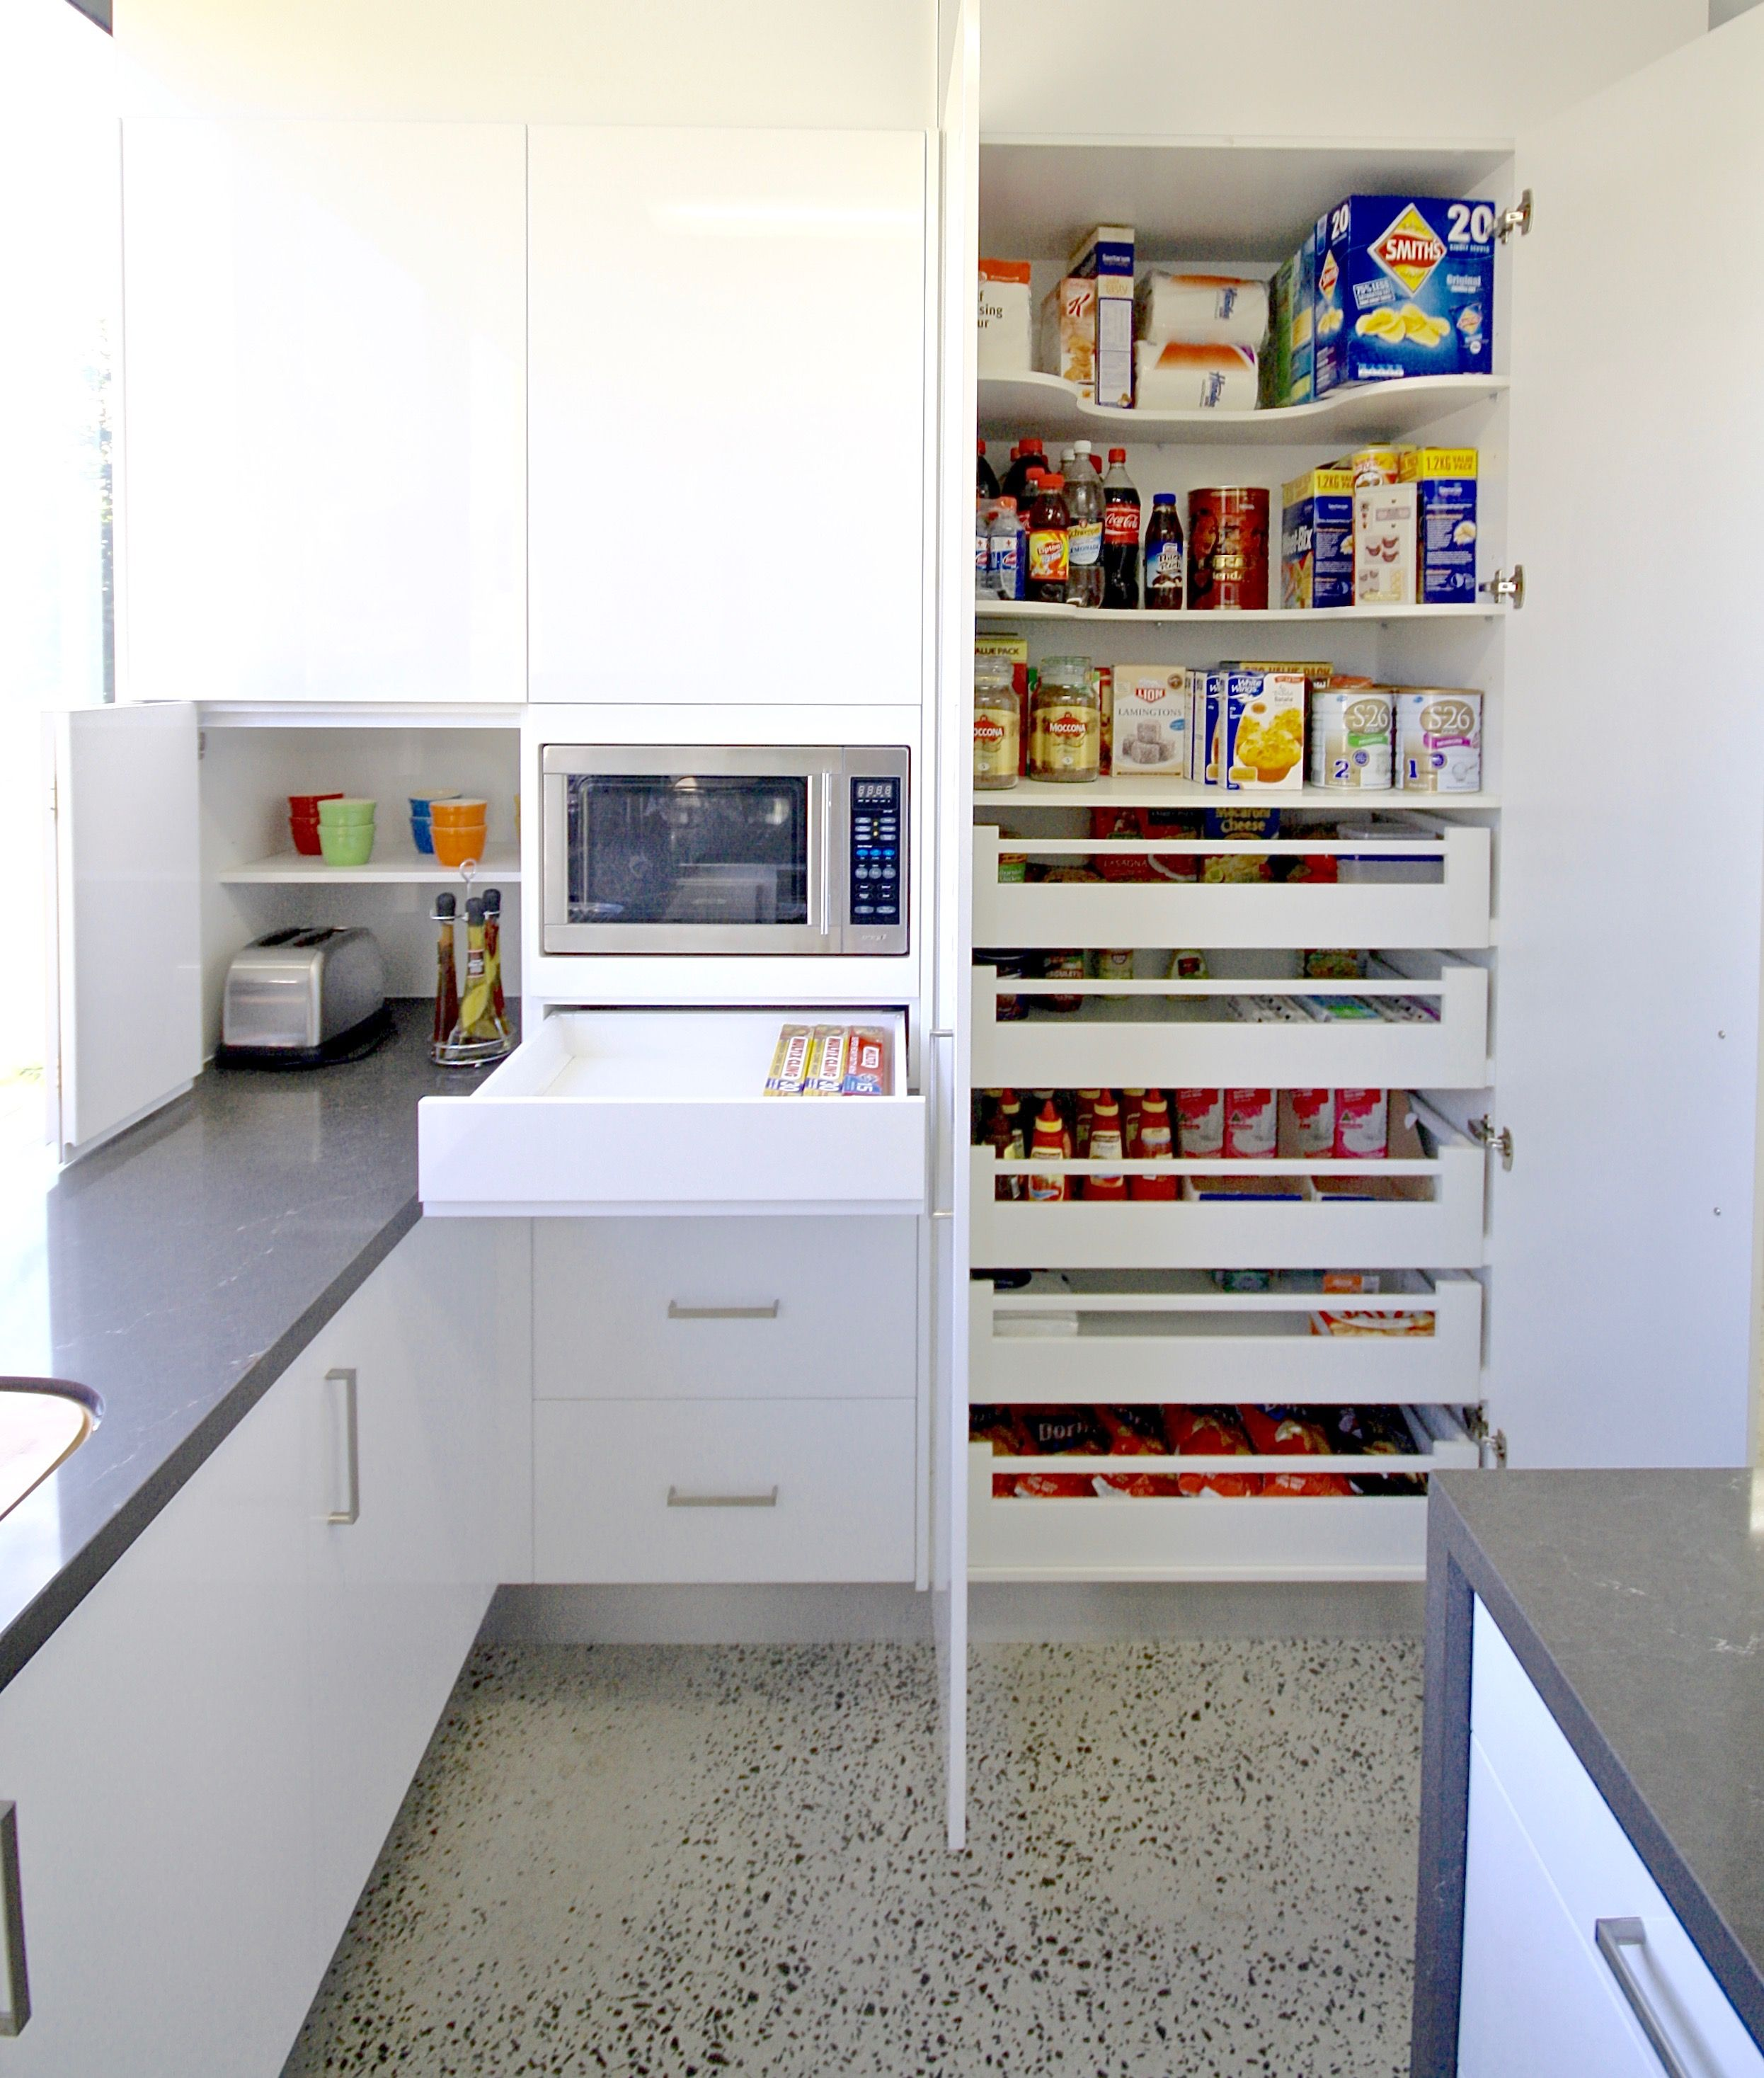 Under Counter Microwave For Easier Works: PANTRY. Blum Soft Closing Drawers, Shaped Shelving For